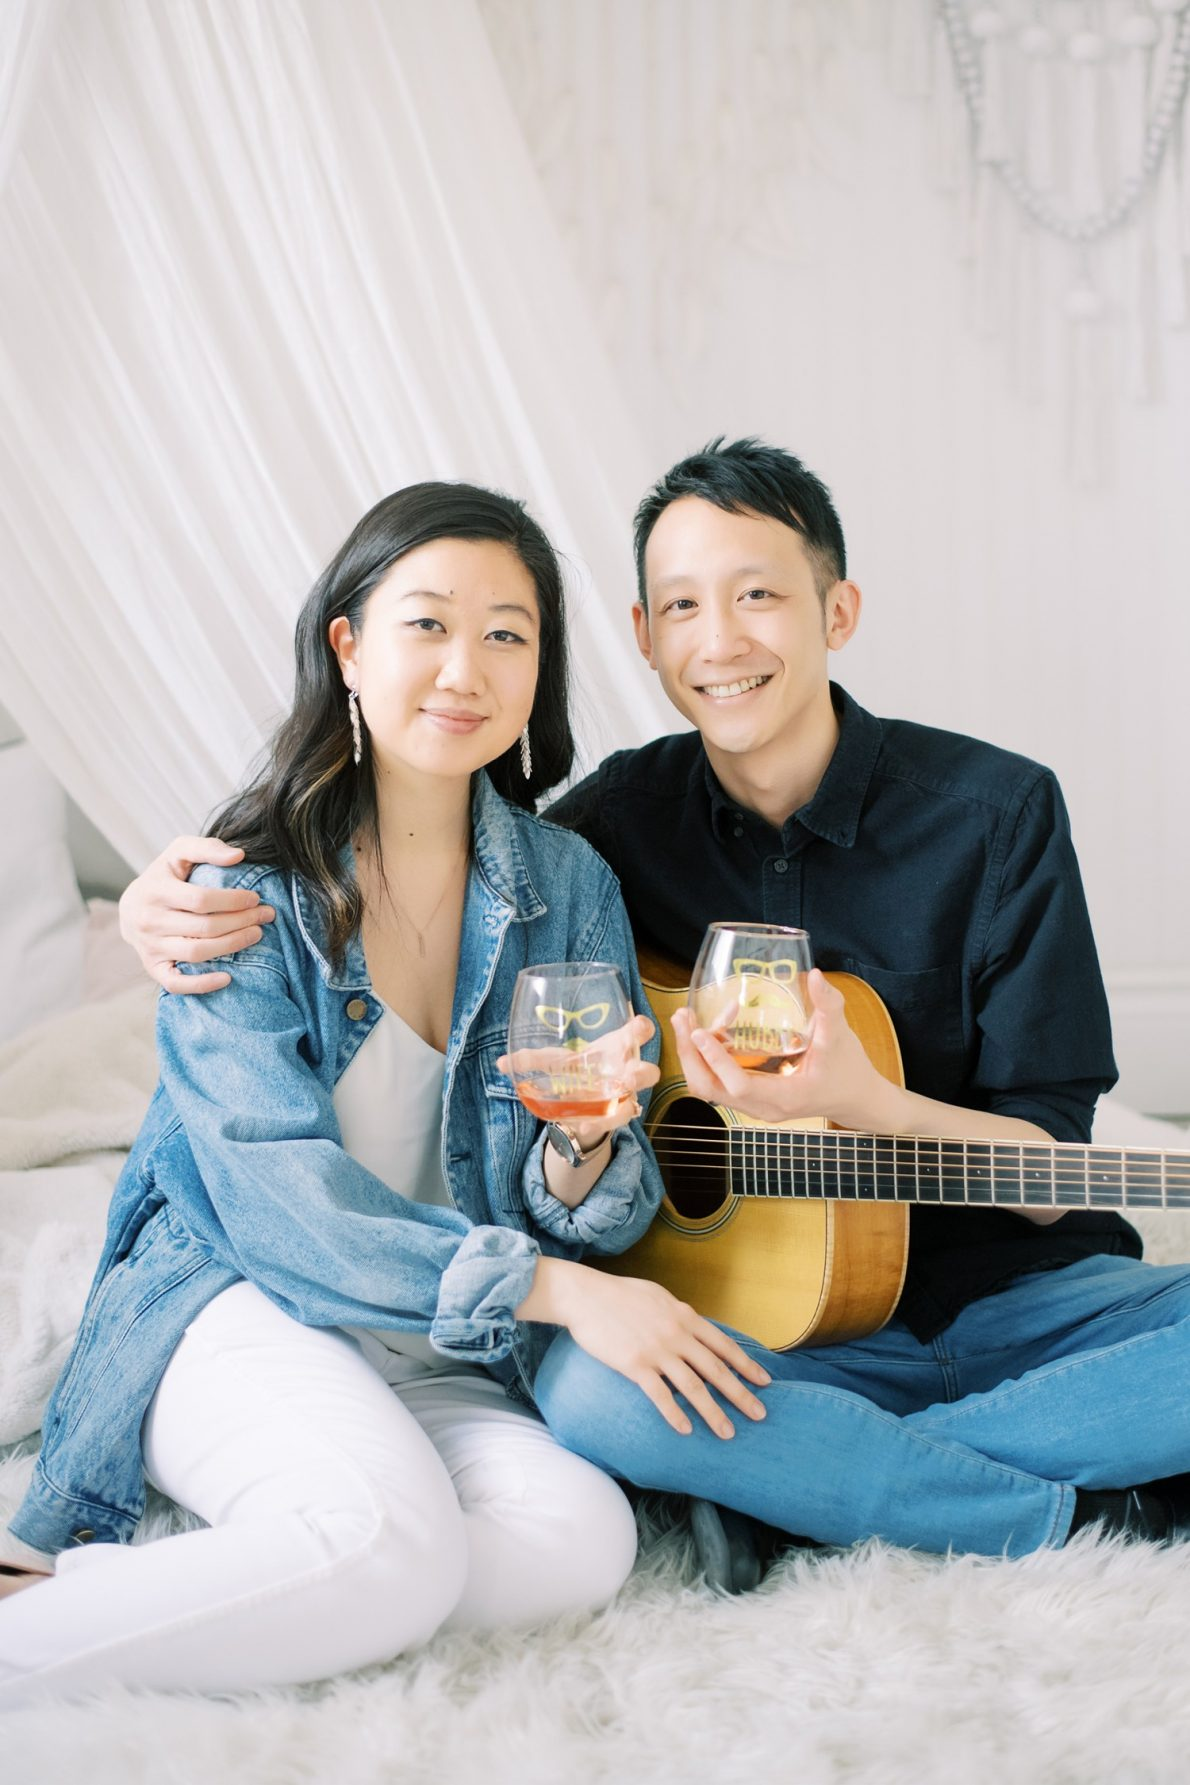 Guitar and Props at Mint Room Studio Nest Room Toronto Engagement Photos